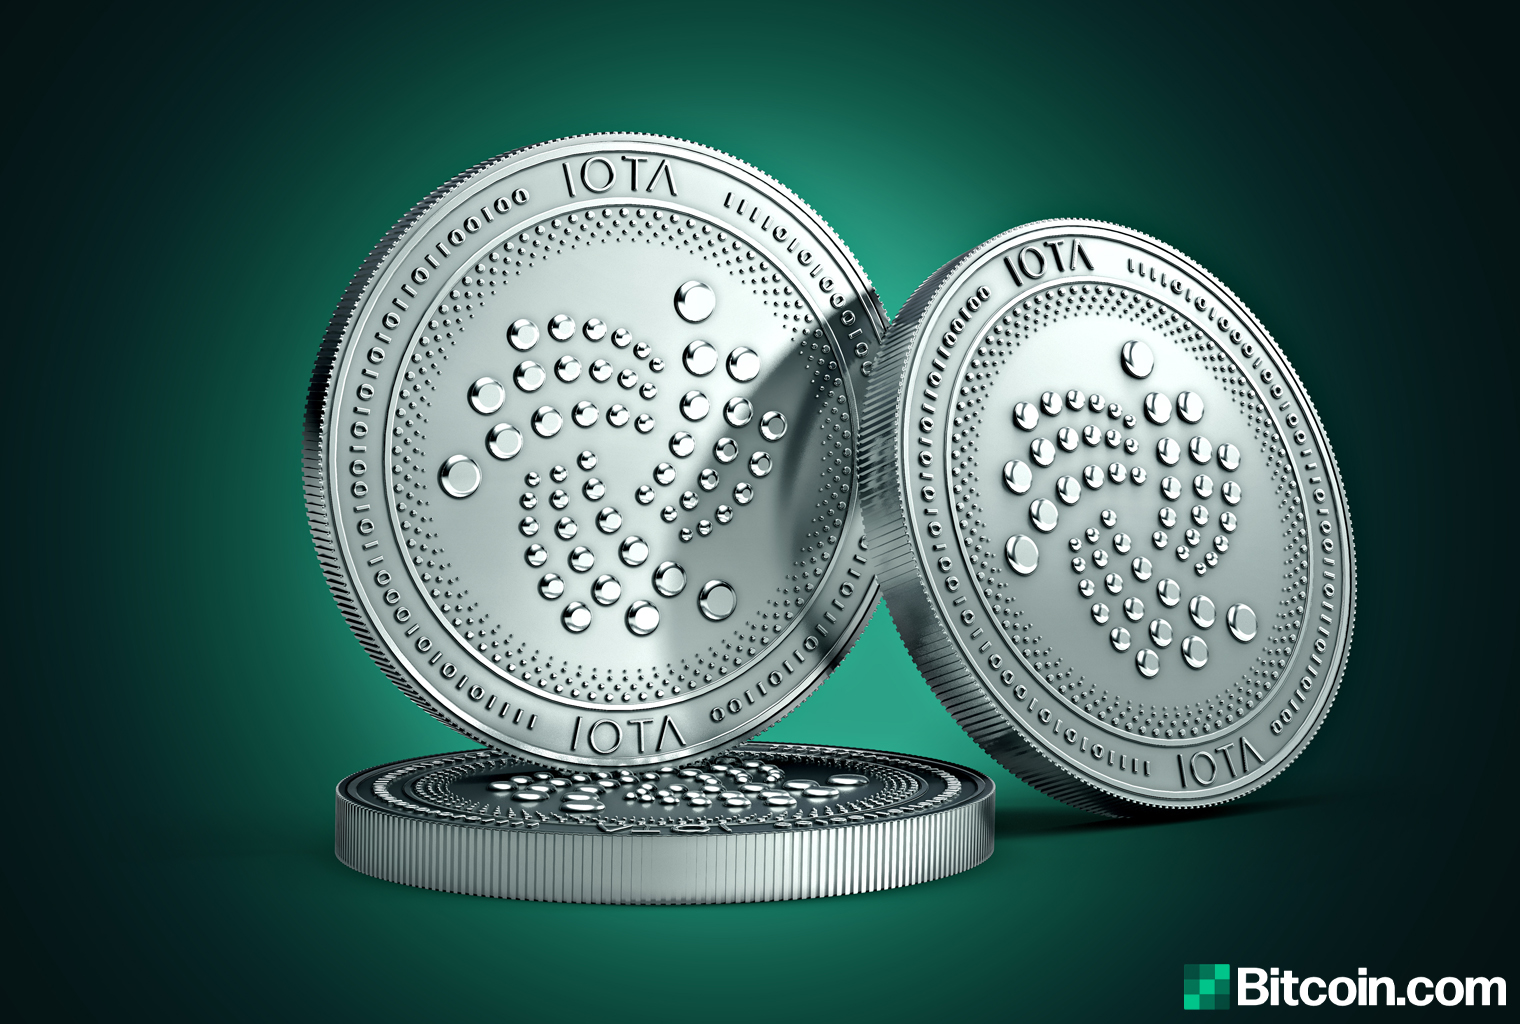 IOTA Network Down for 11 Days - Devs Claim Mainnet Will Be Operational Next Month